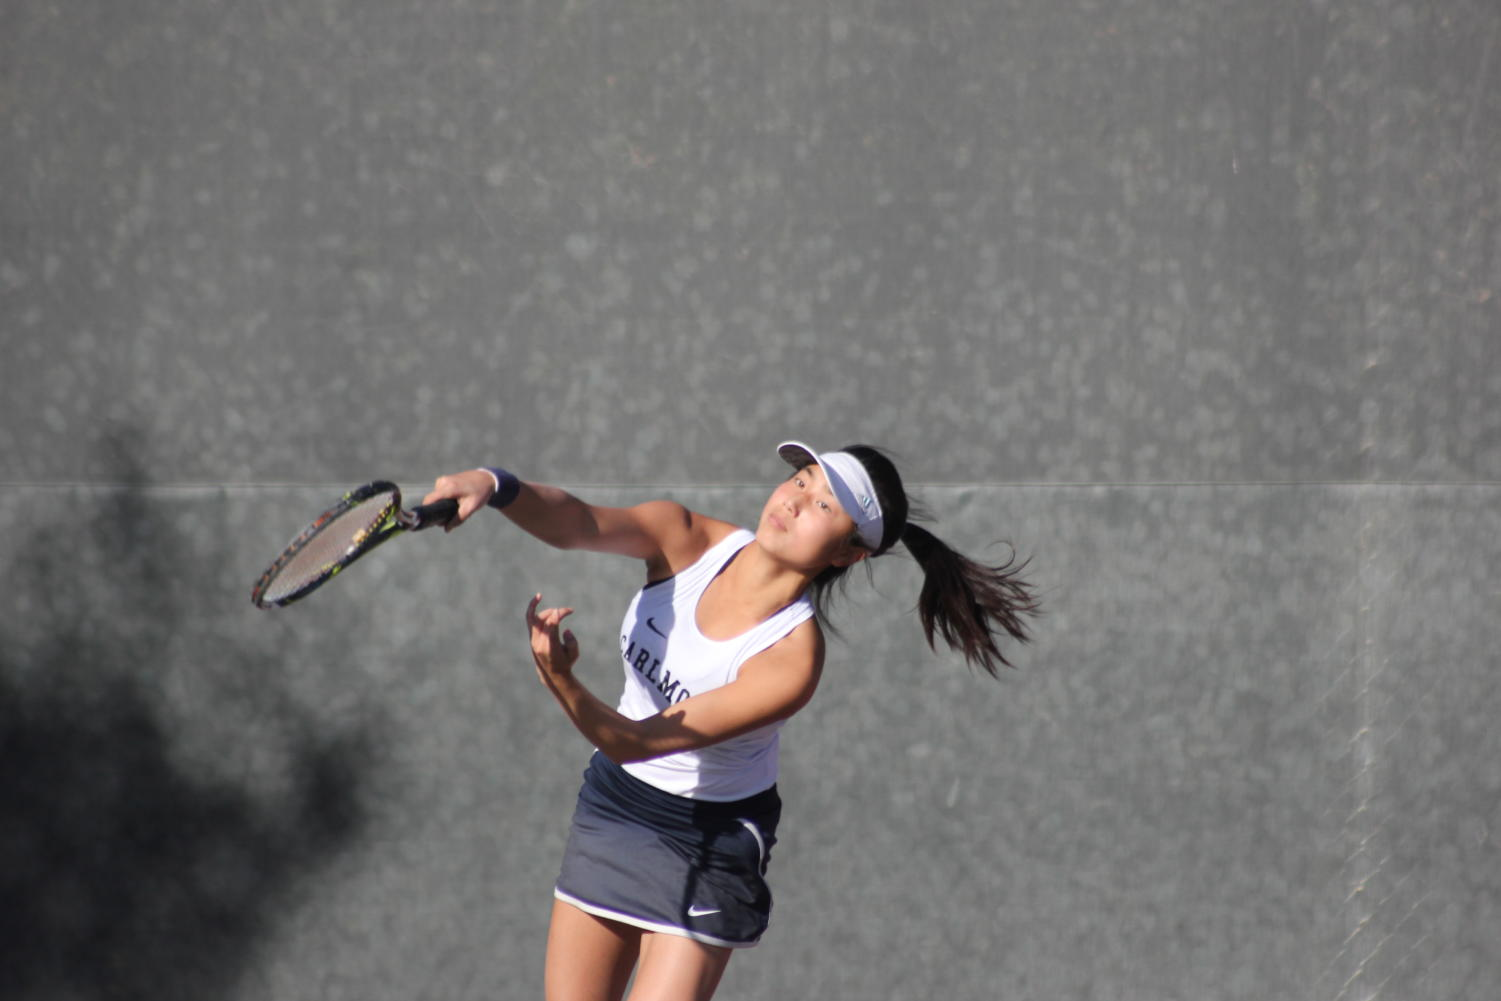 Singles one player Annika Lin aces her serve in her first match of the day.